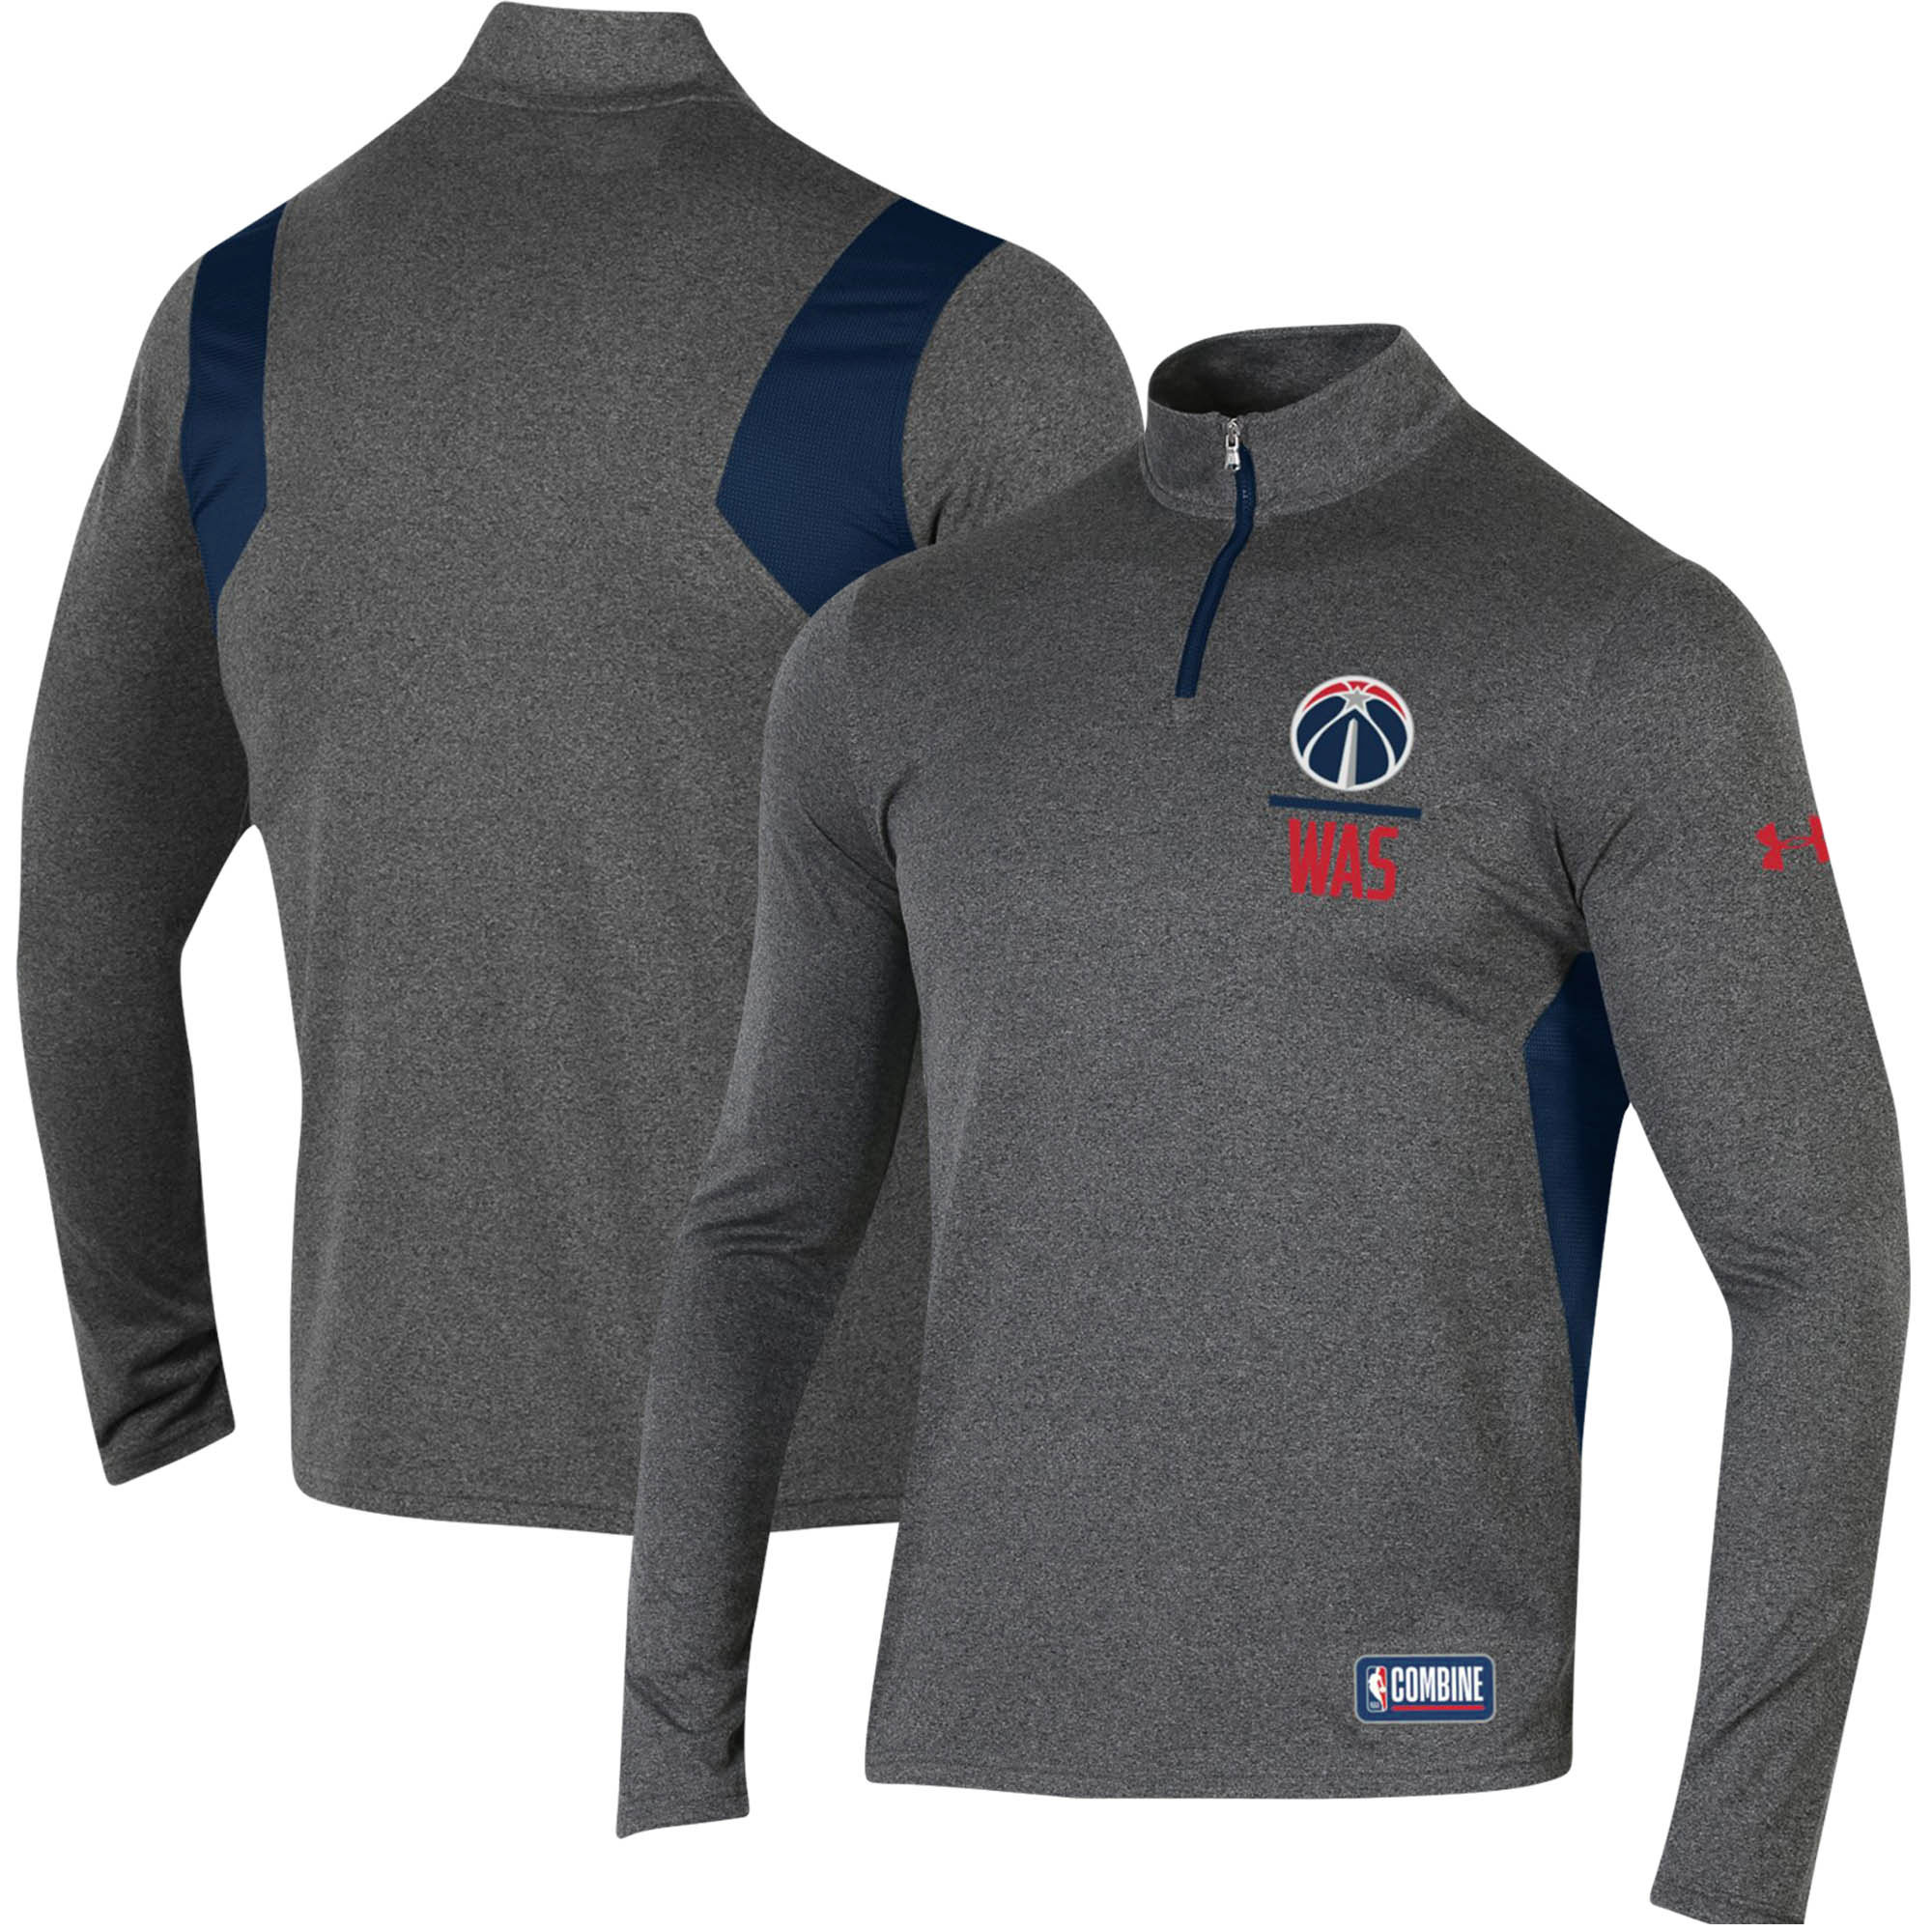 Washington Wizards Under Armour Combine Authentic Season Tech Quarter-Zip Pullover Jacket - Heathered Charcoal